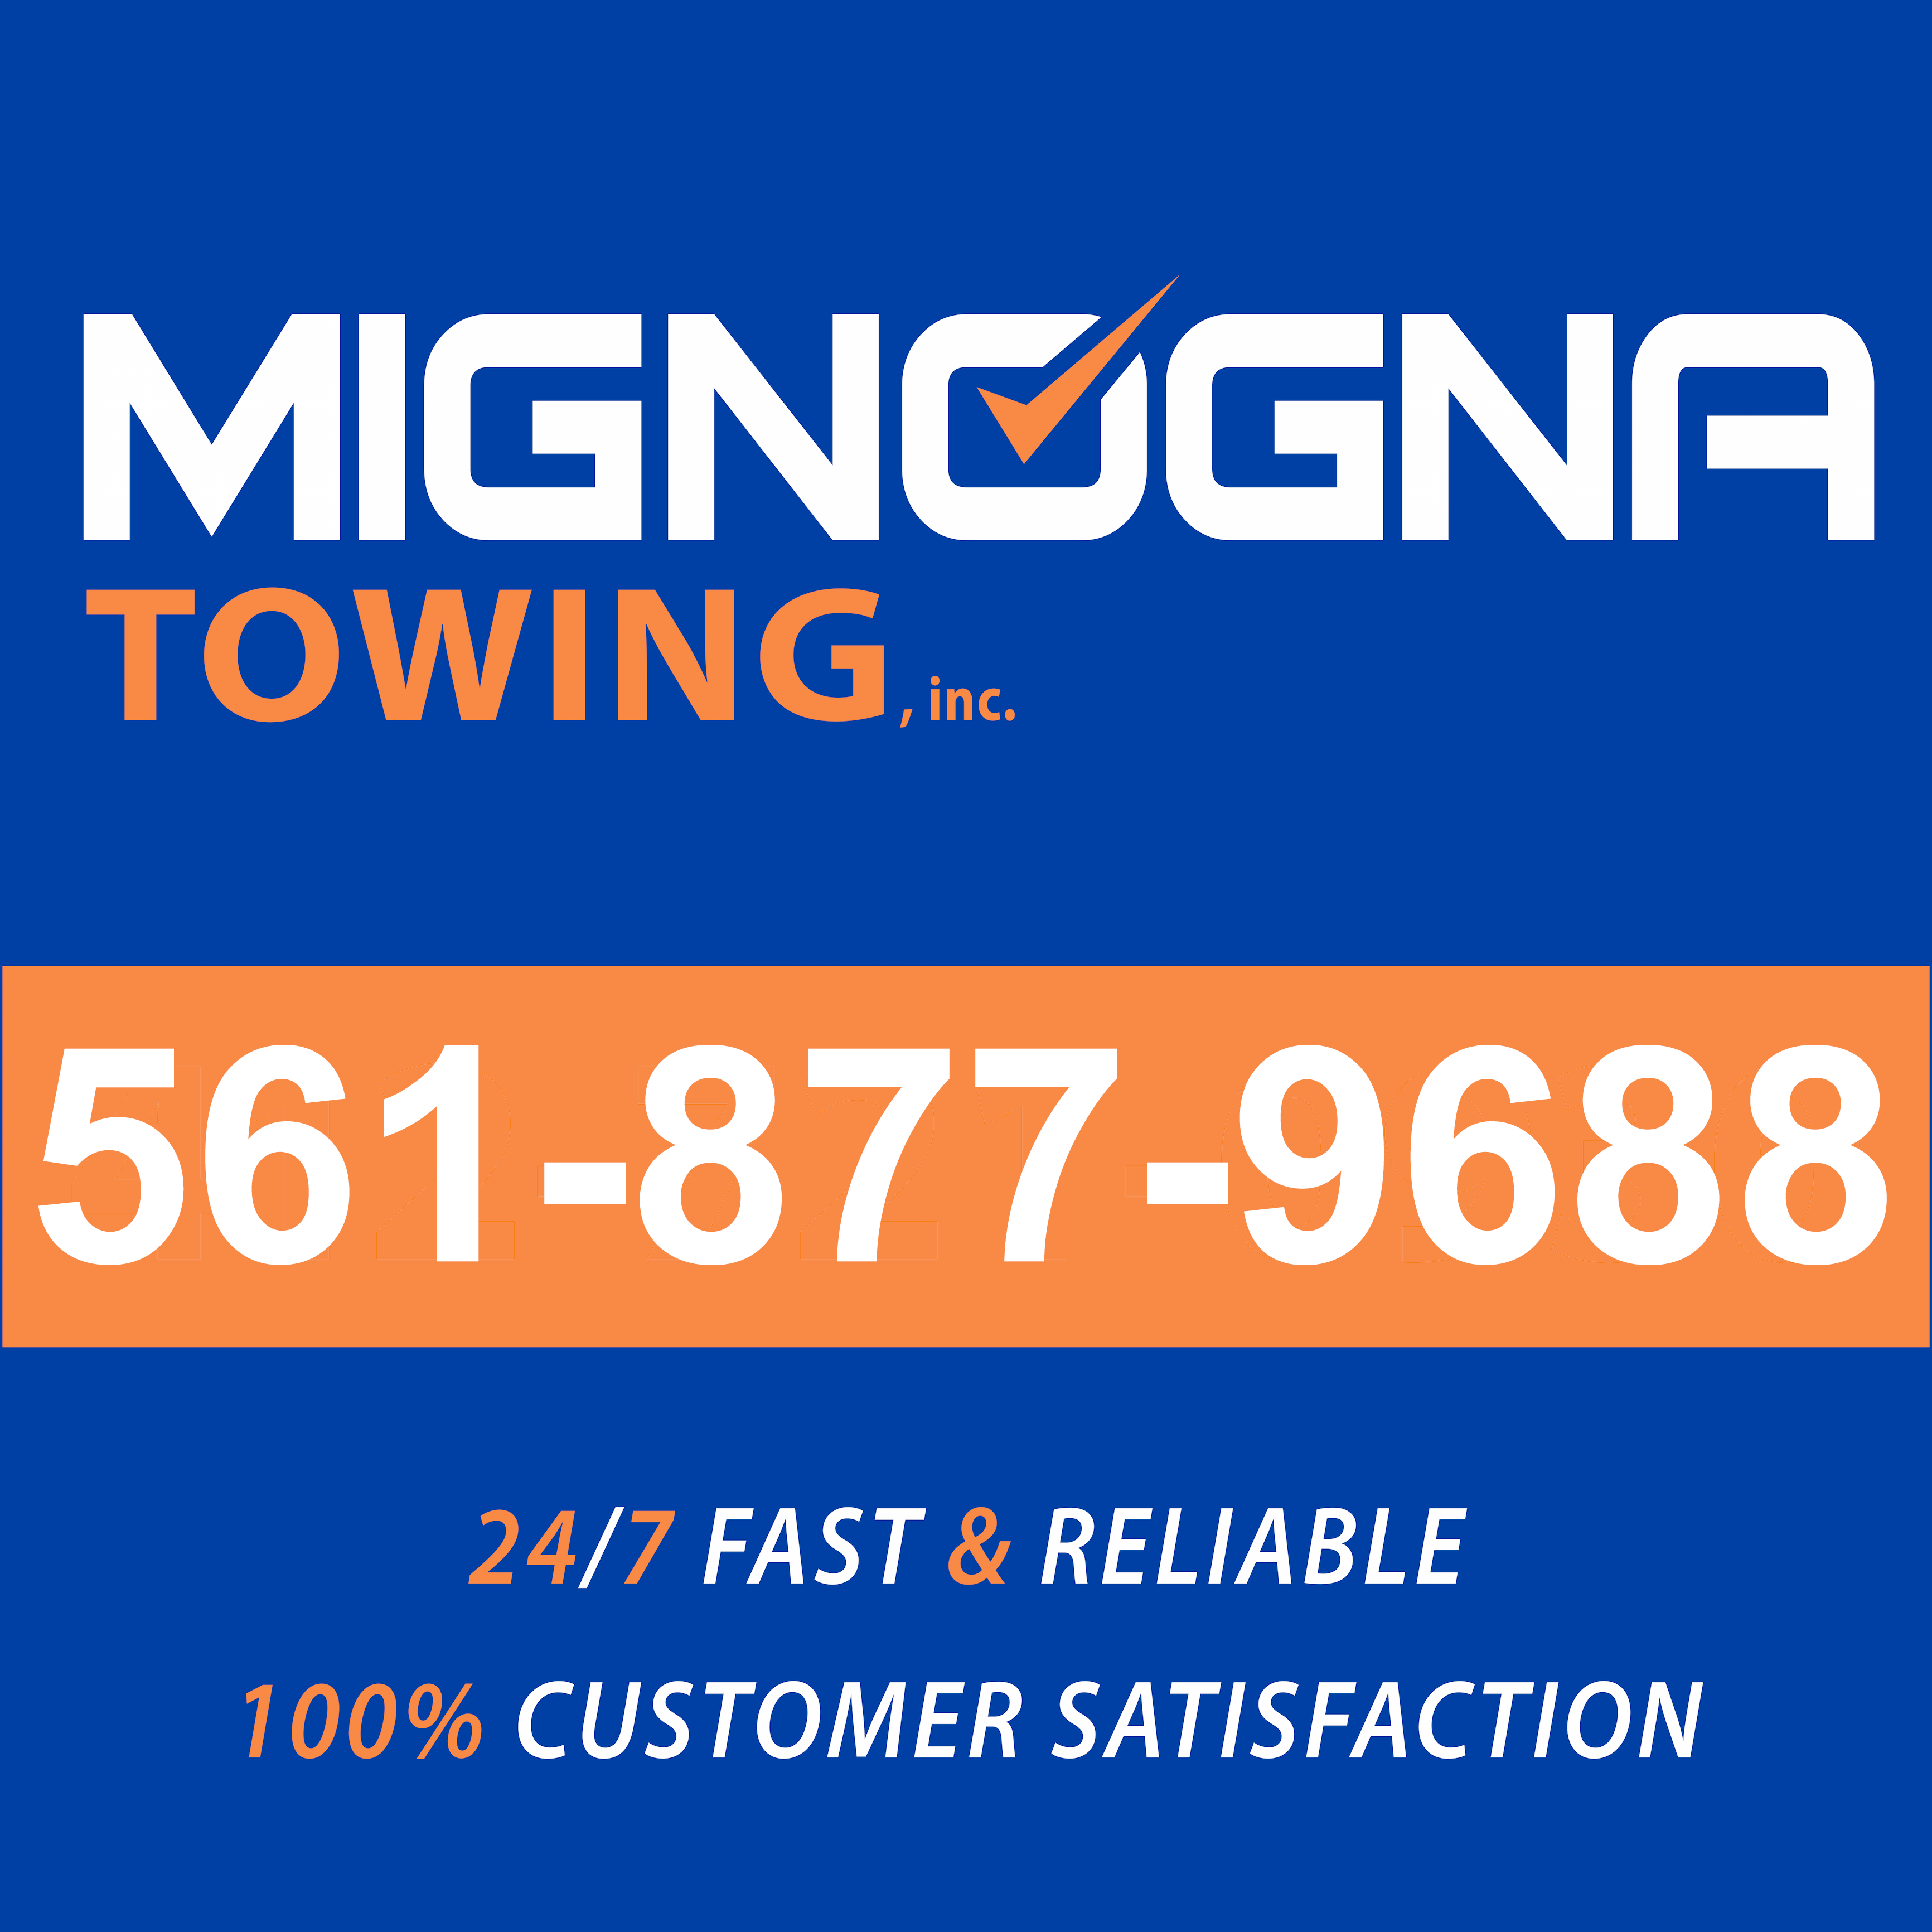 Mignogna Towing, Inc. image 0